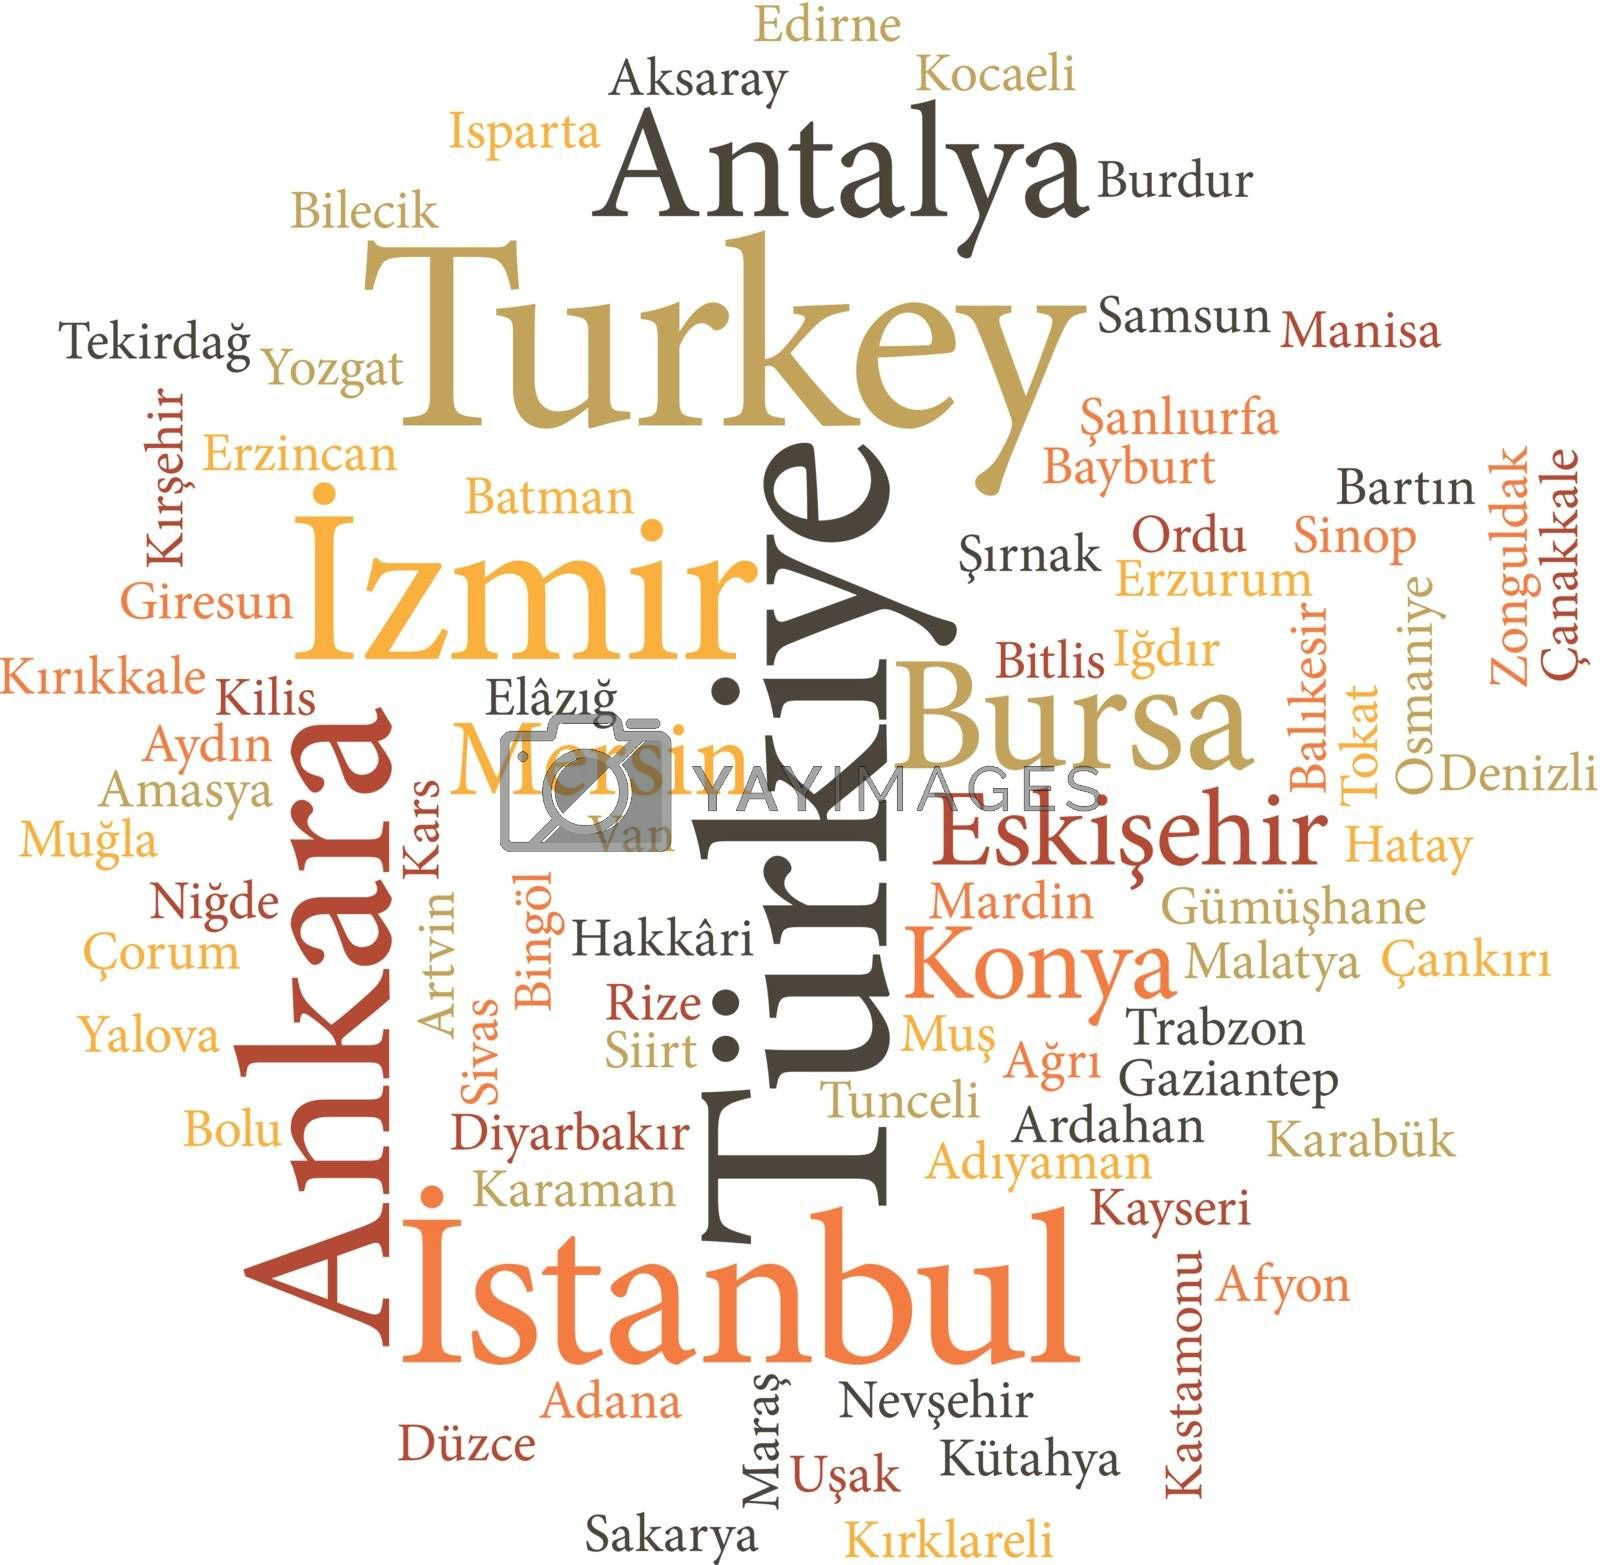 cities of Turkey in word clouds by Istanbul2009